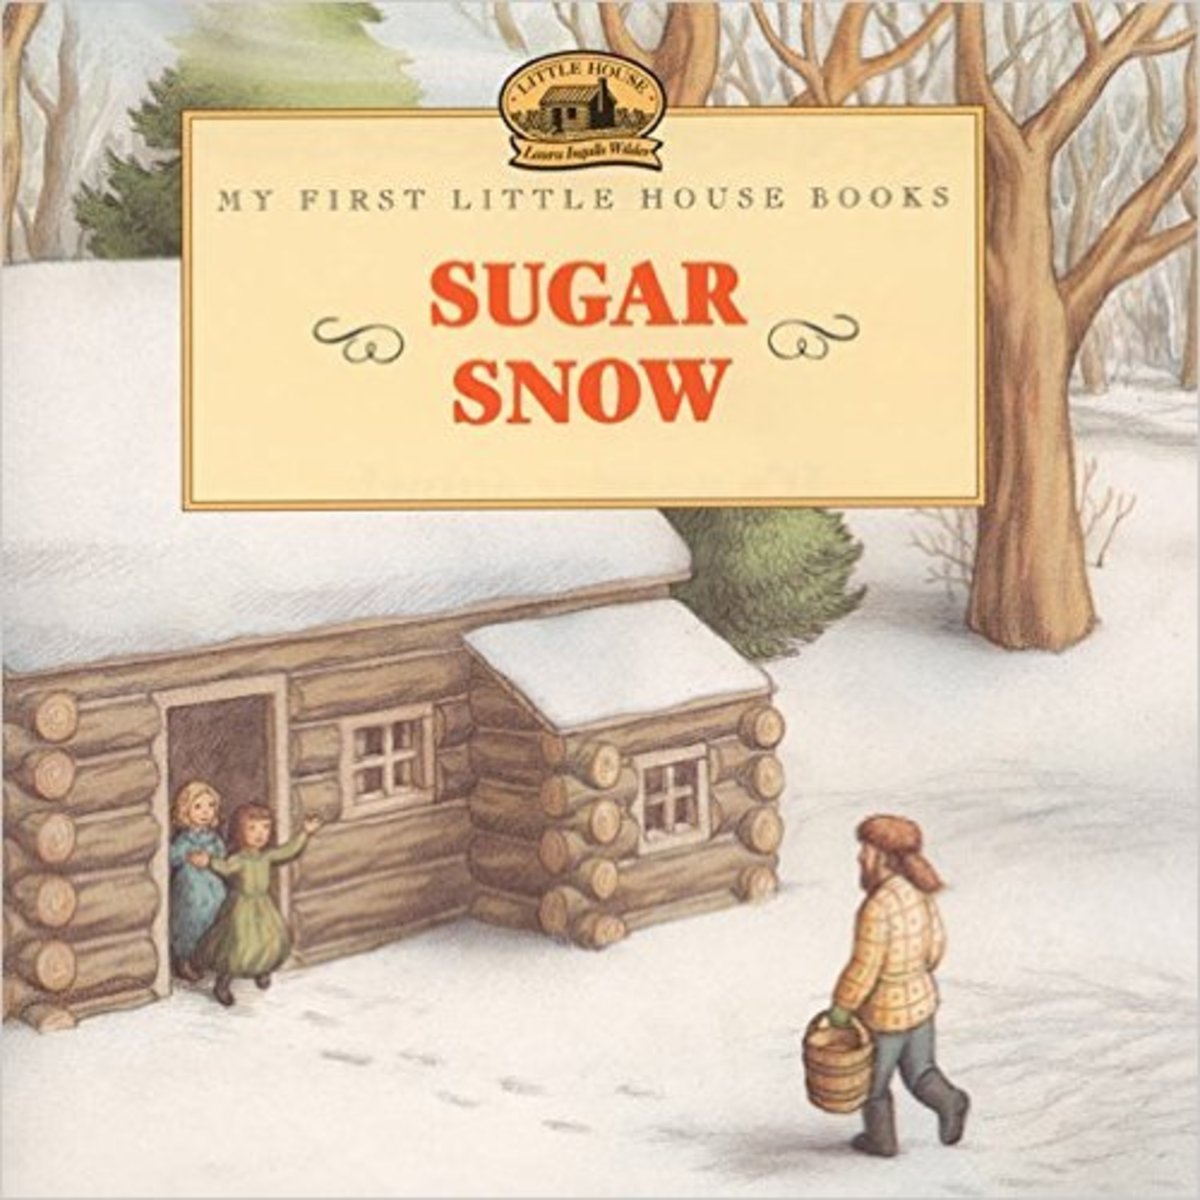 Sugar Snow (My First Little House) by Laura Ingalls Wilder